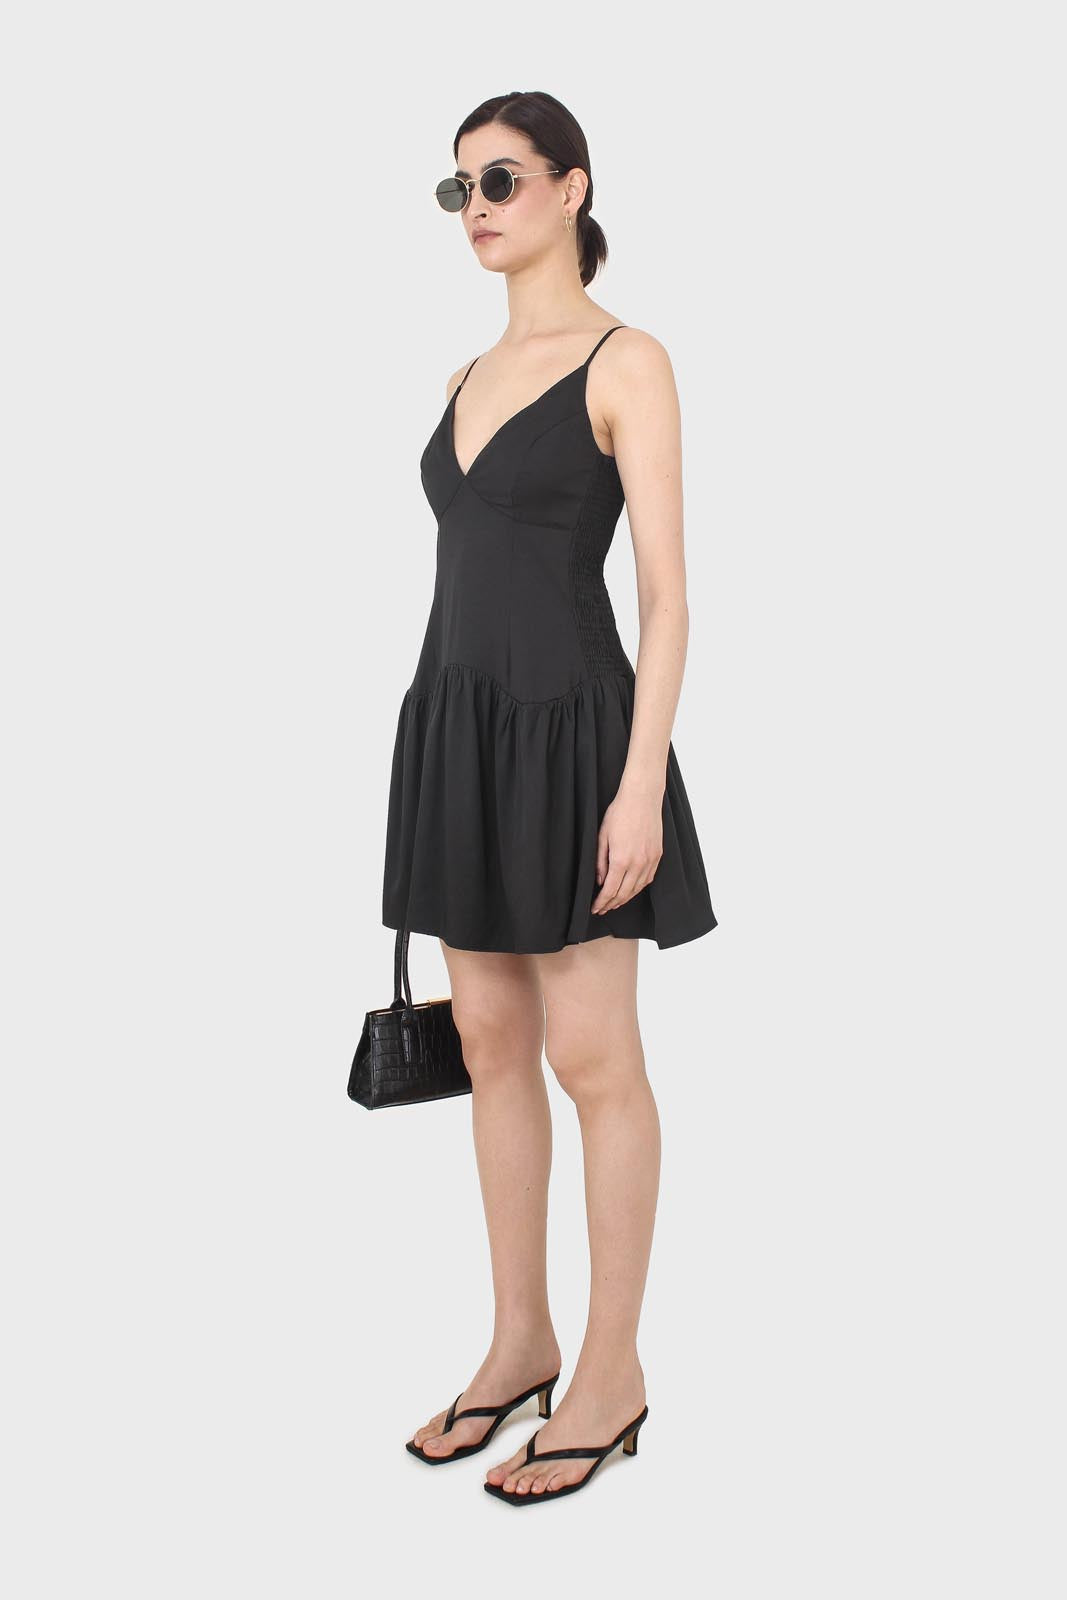 Black spaghetti strap tie back mini dress2